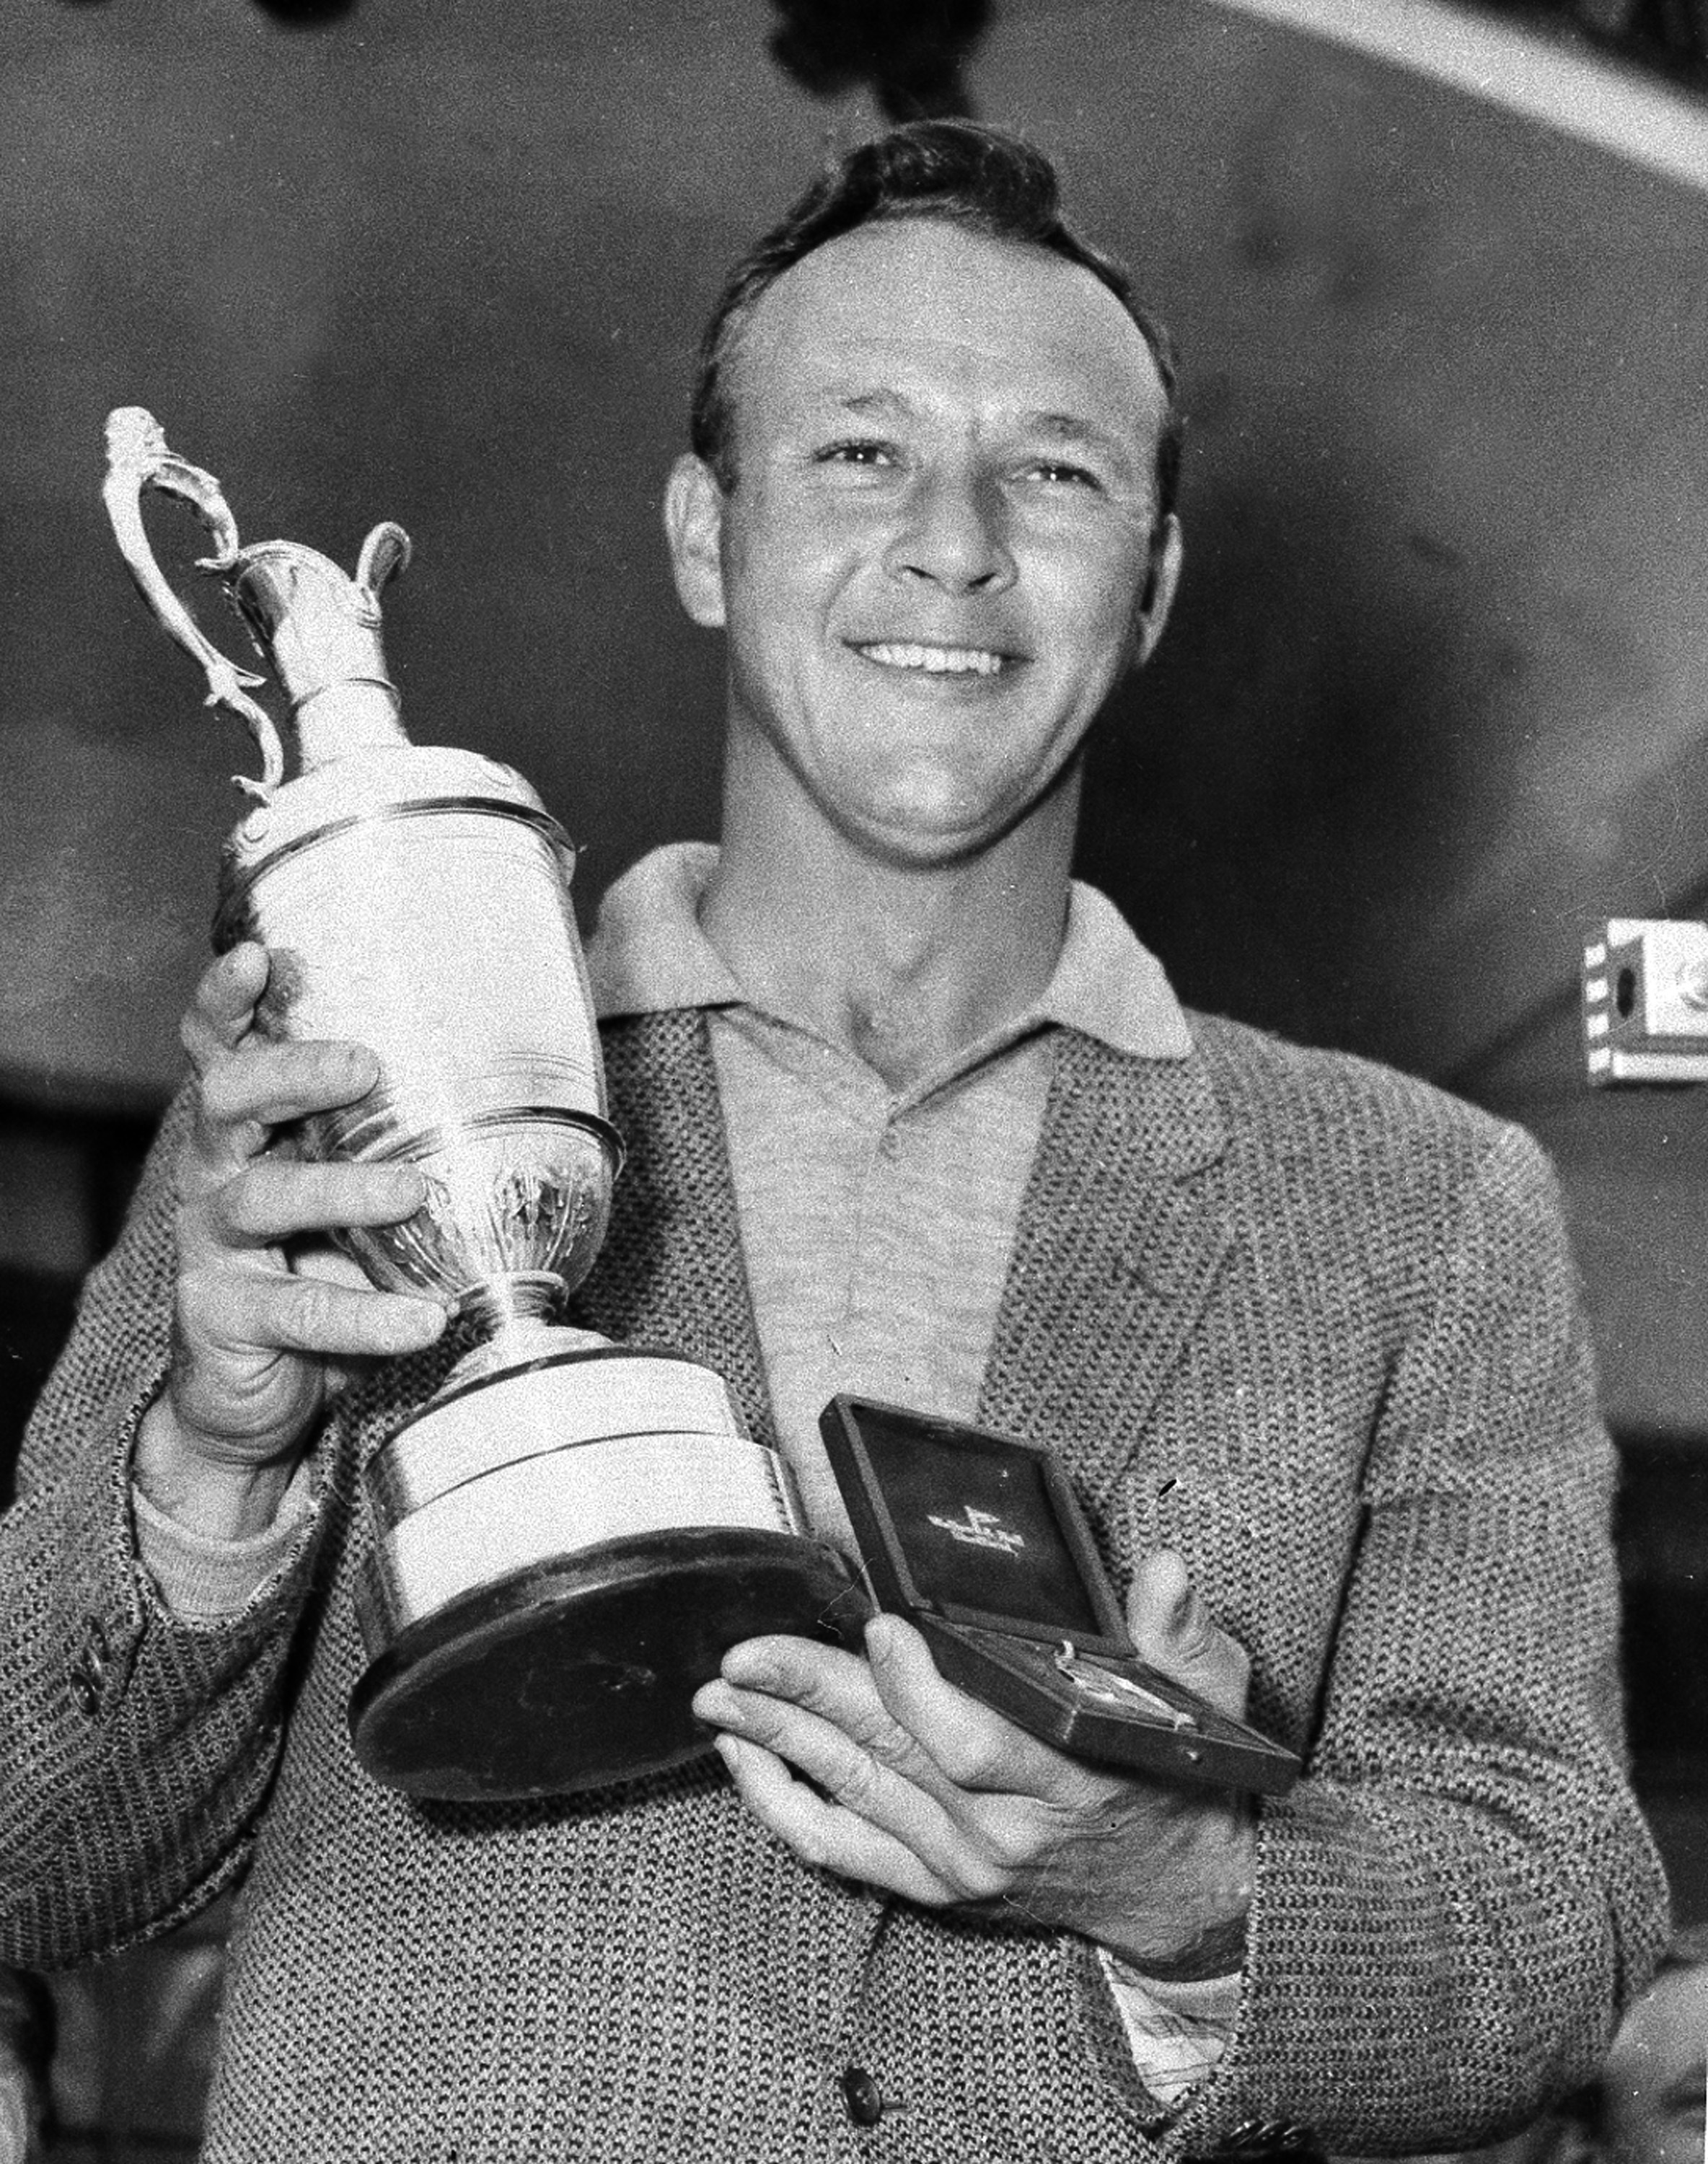 File-This July 15, 1961, file photo shows Arnold Palmer smiling with his trophy and medal after winning the British Open Golf Championship by a single stroke at Royal Birkdale course in Birkdale, Lancashire, England. Palmer, who made golf popular for the